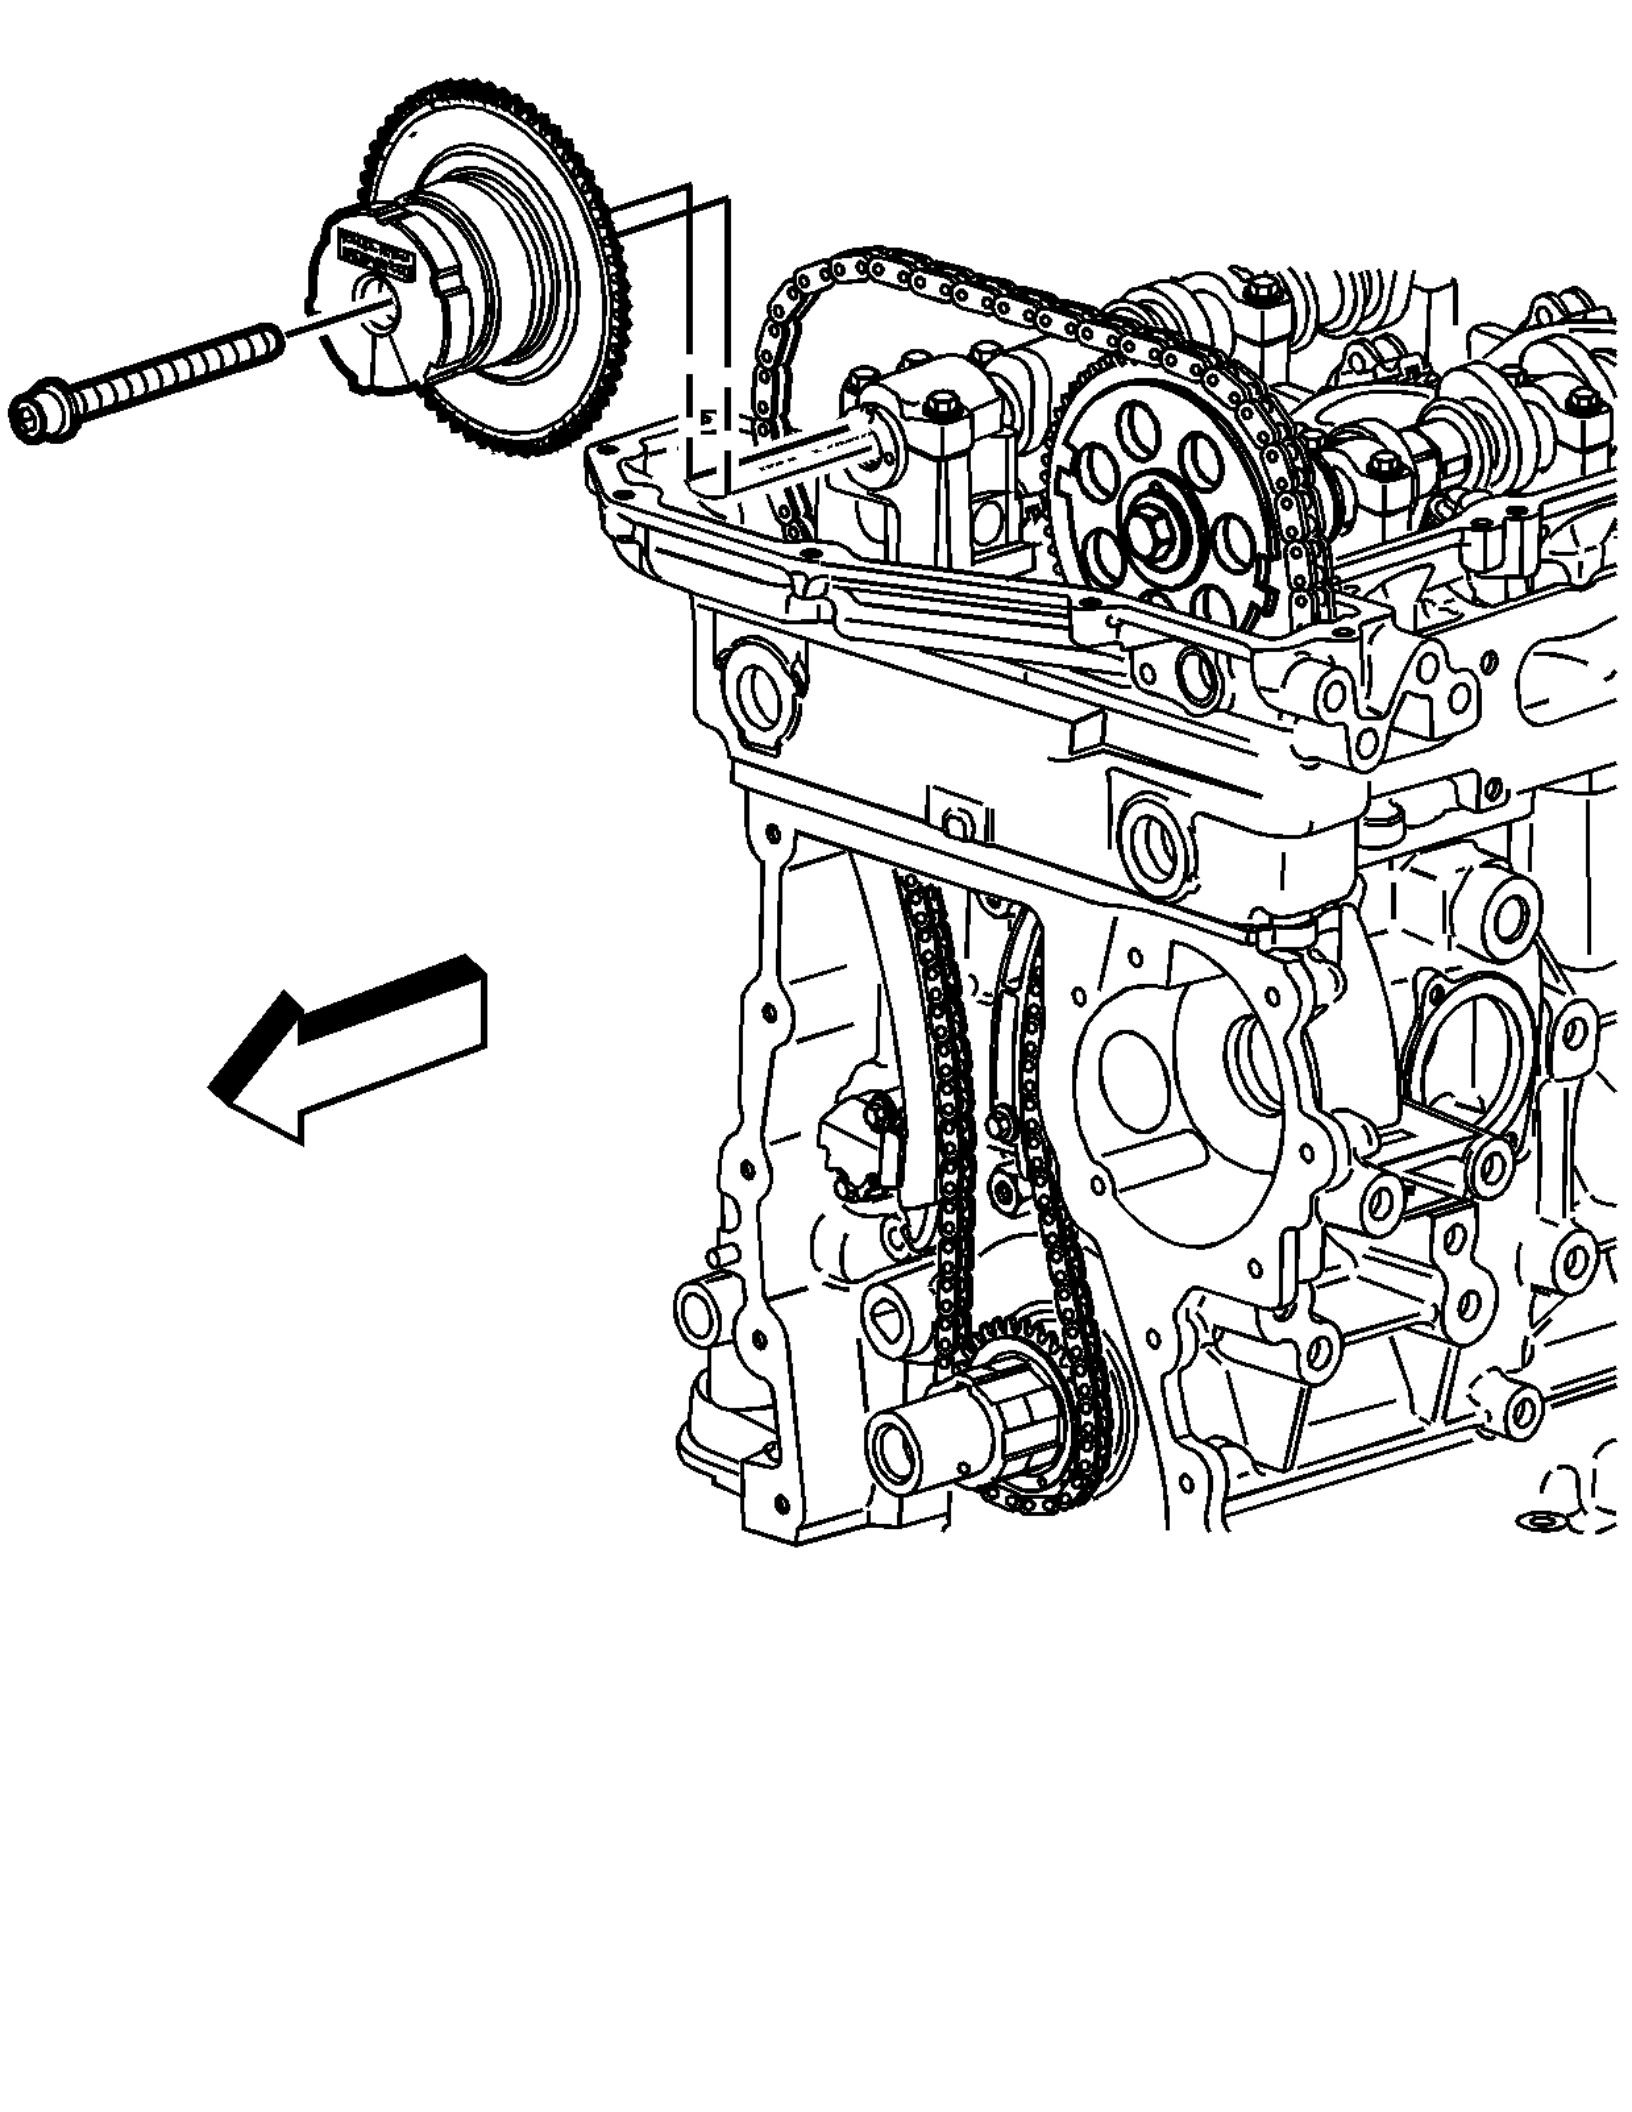 Gmc Envoy Parts Diagram Di